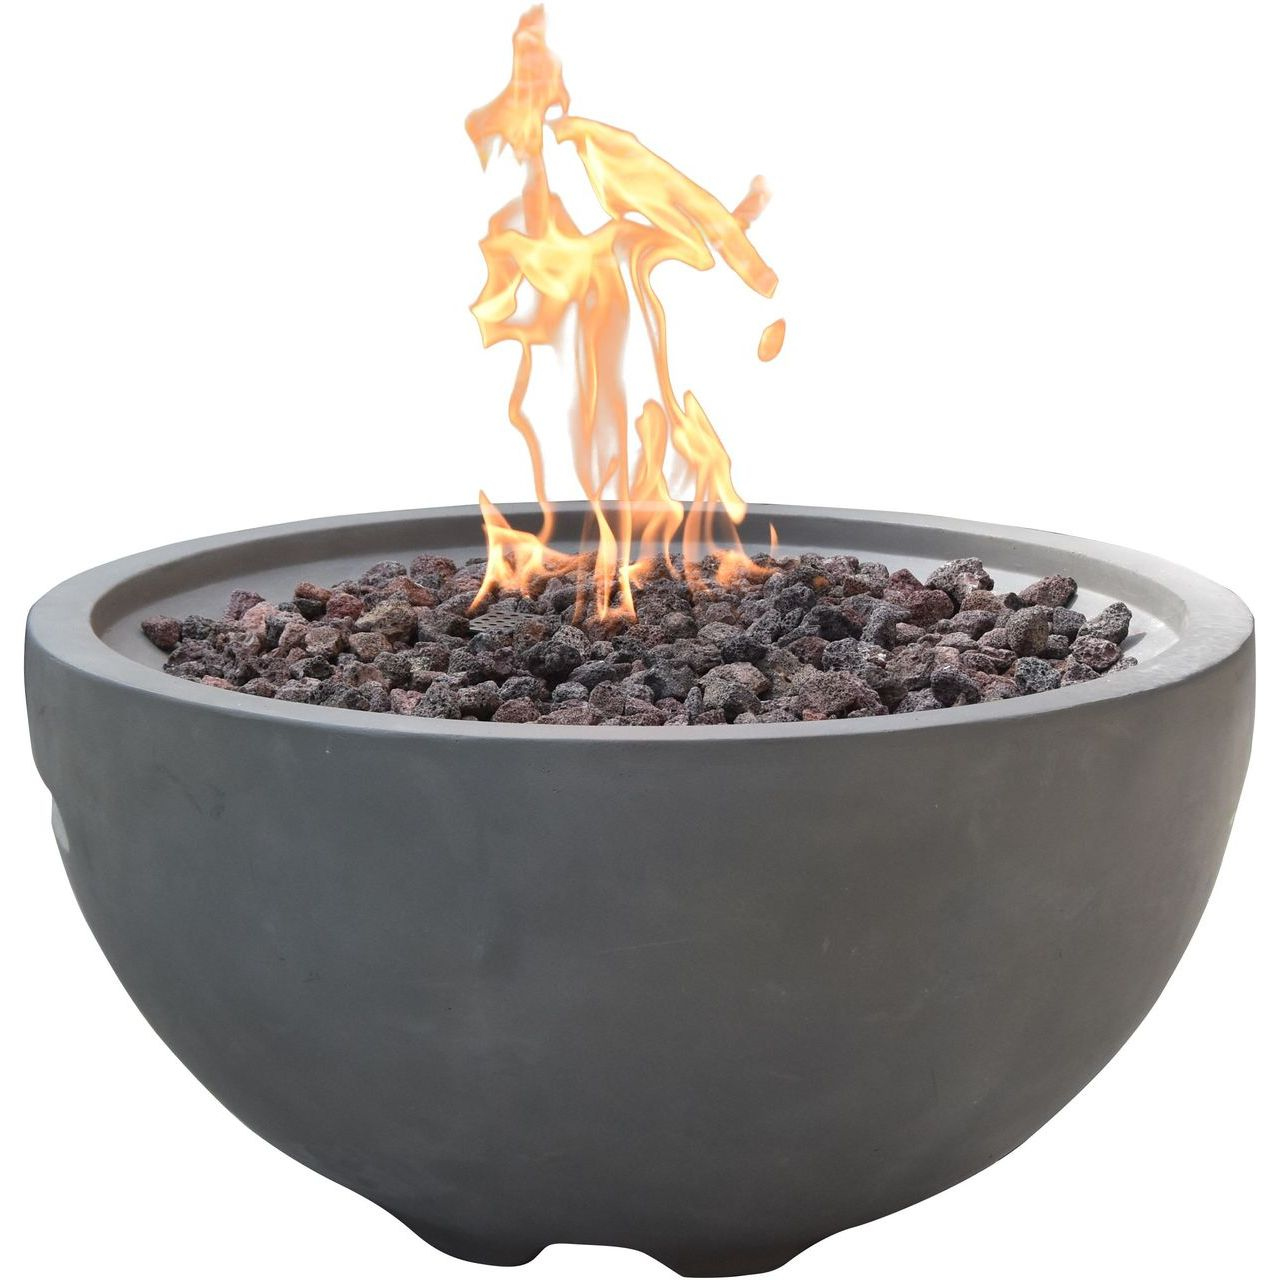 Modeno OFG116-NG Nantucket Fire Bowl  - Natural Gas